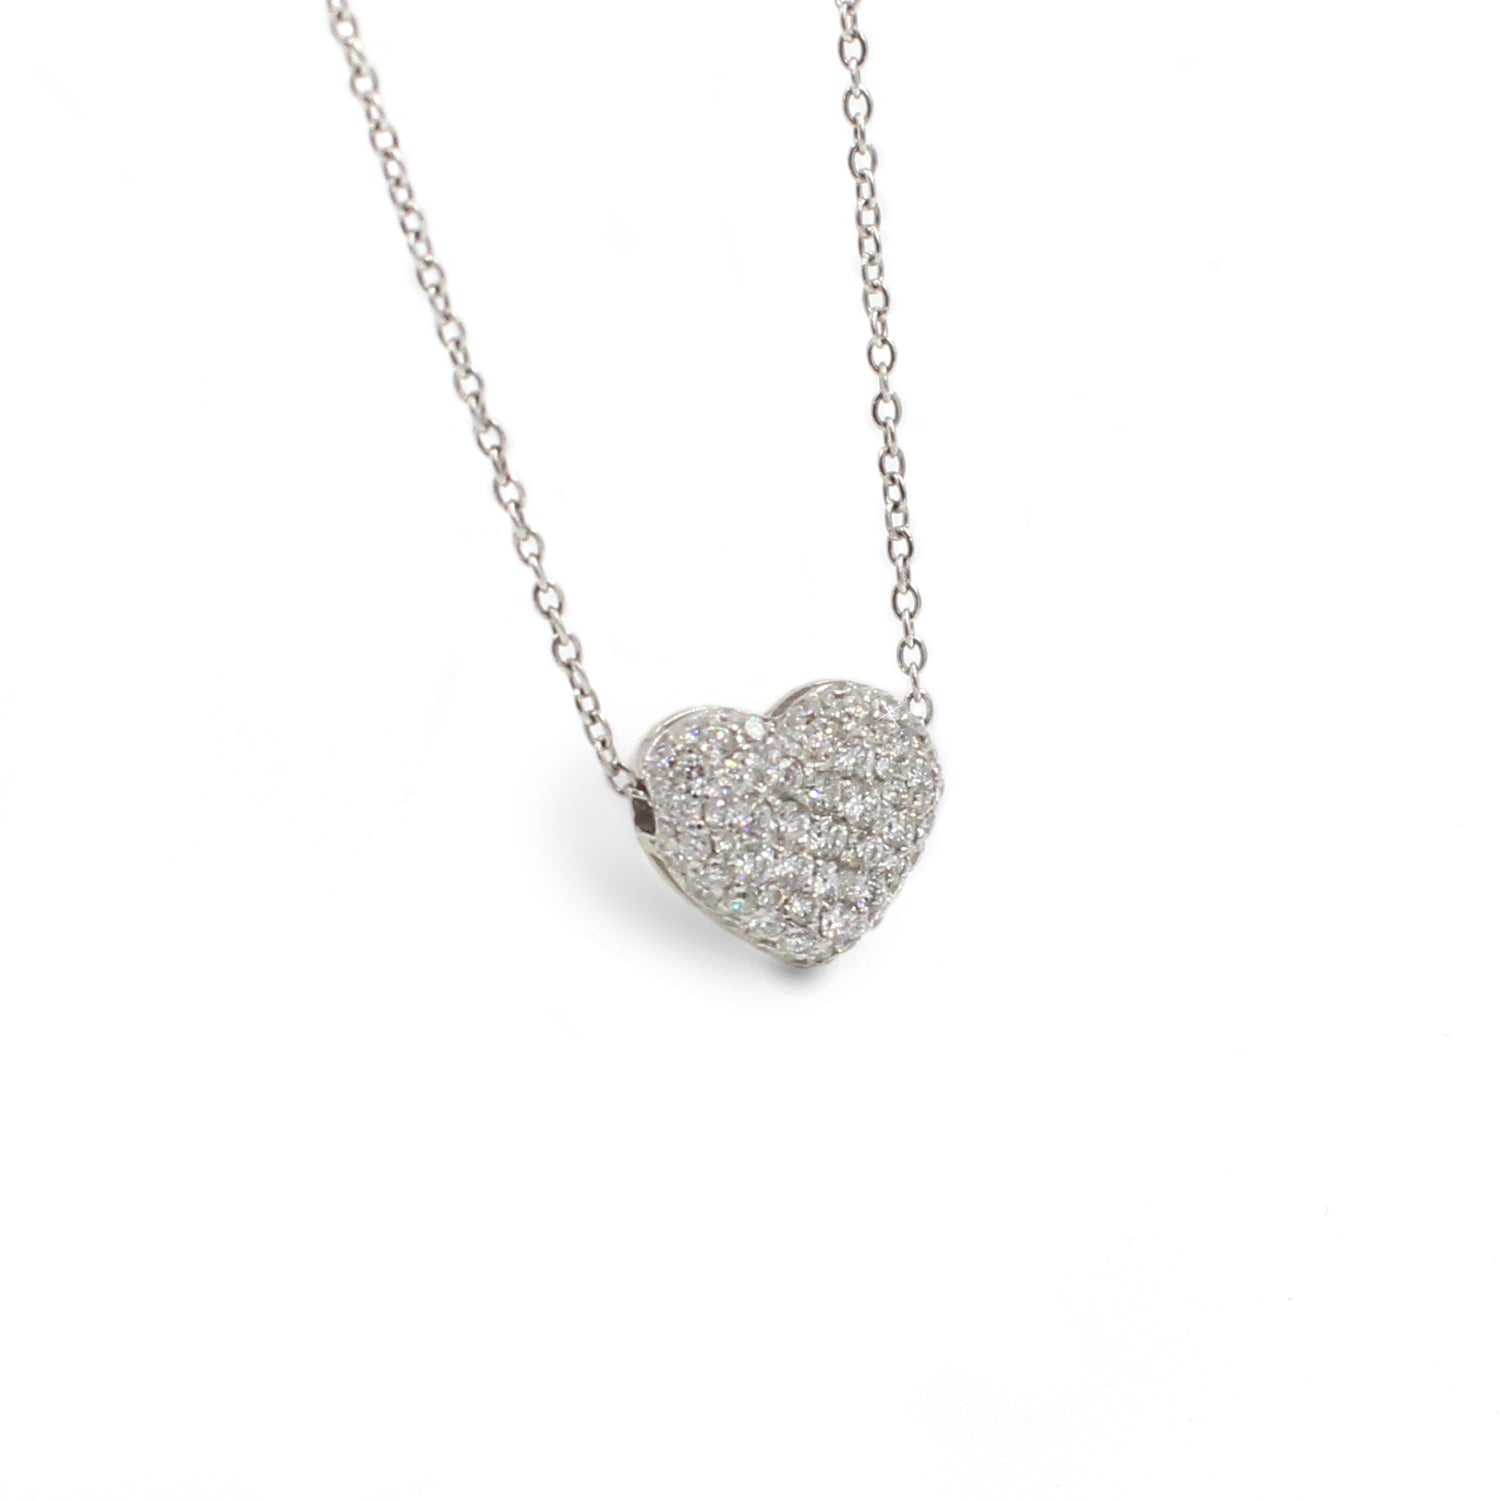 Fine Jewelry Collection: Small Diamond Heart Pendant Necklace